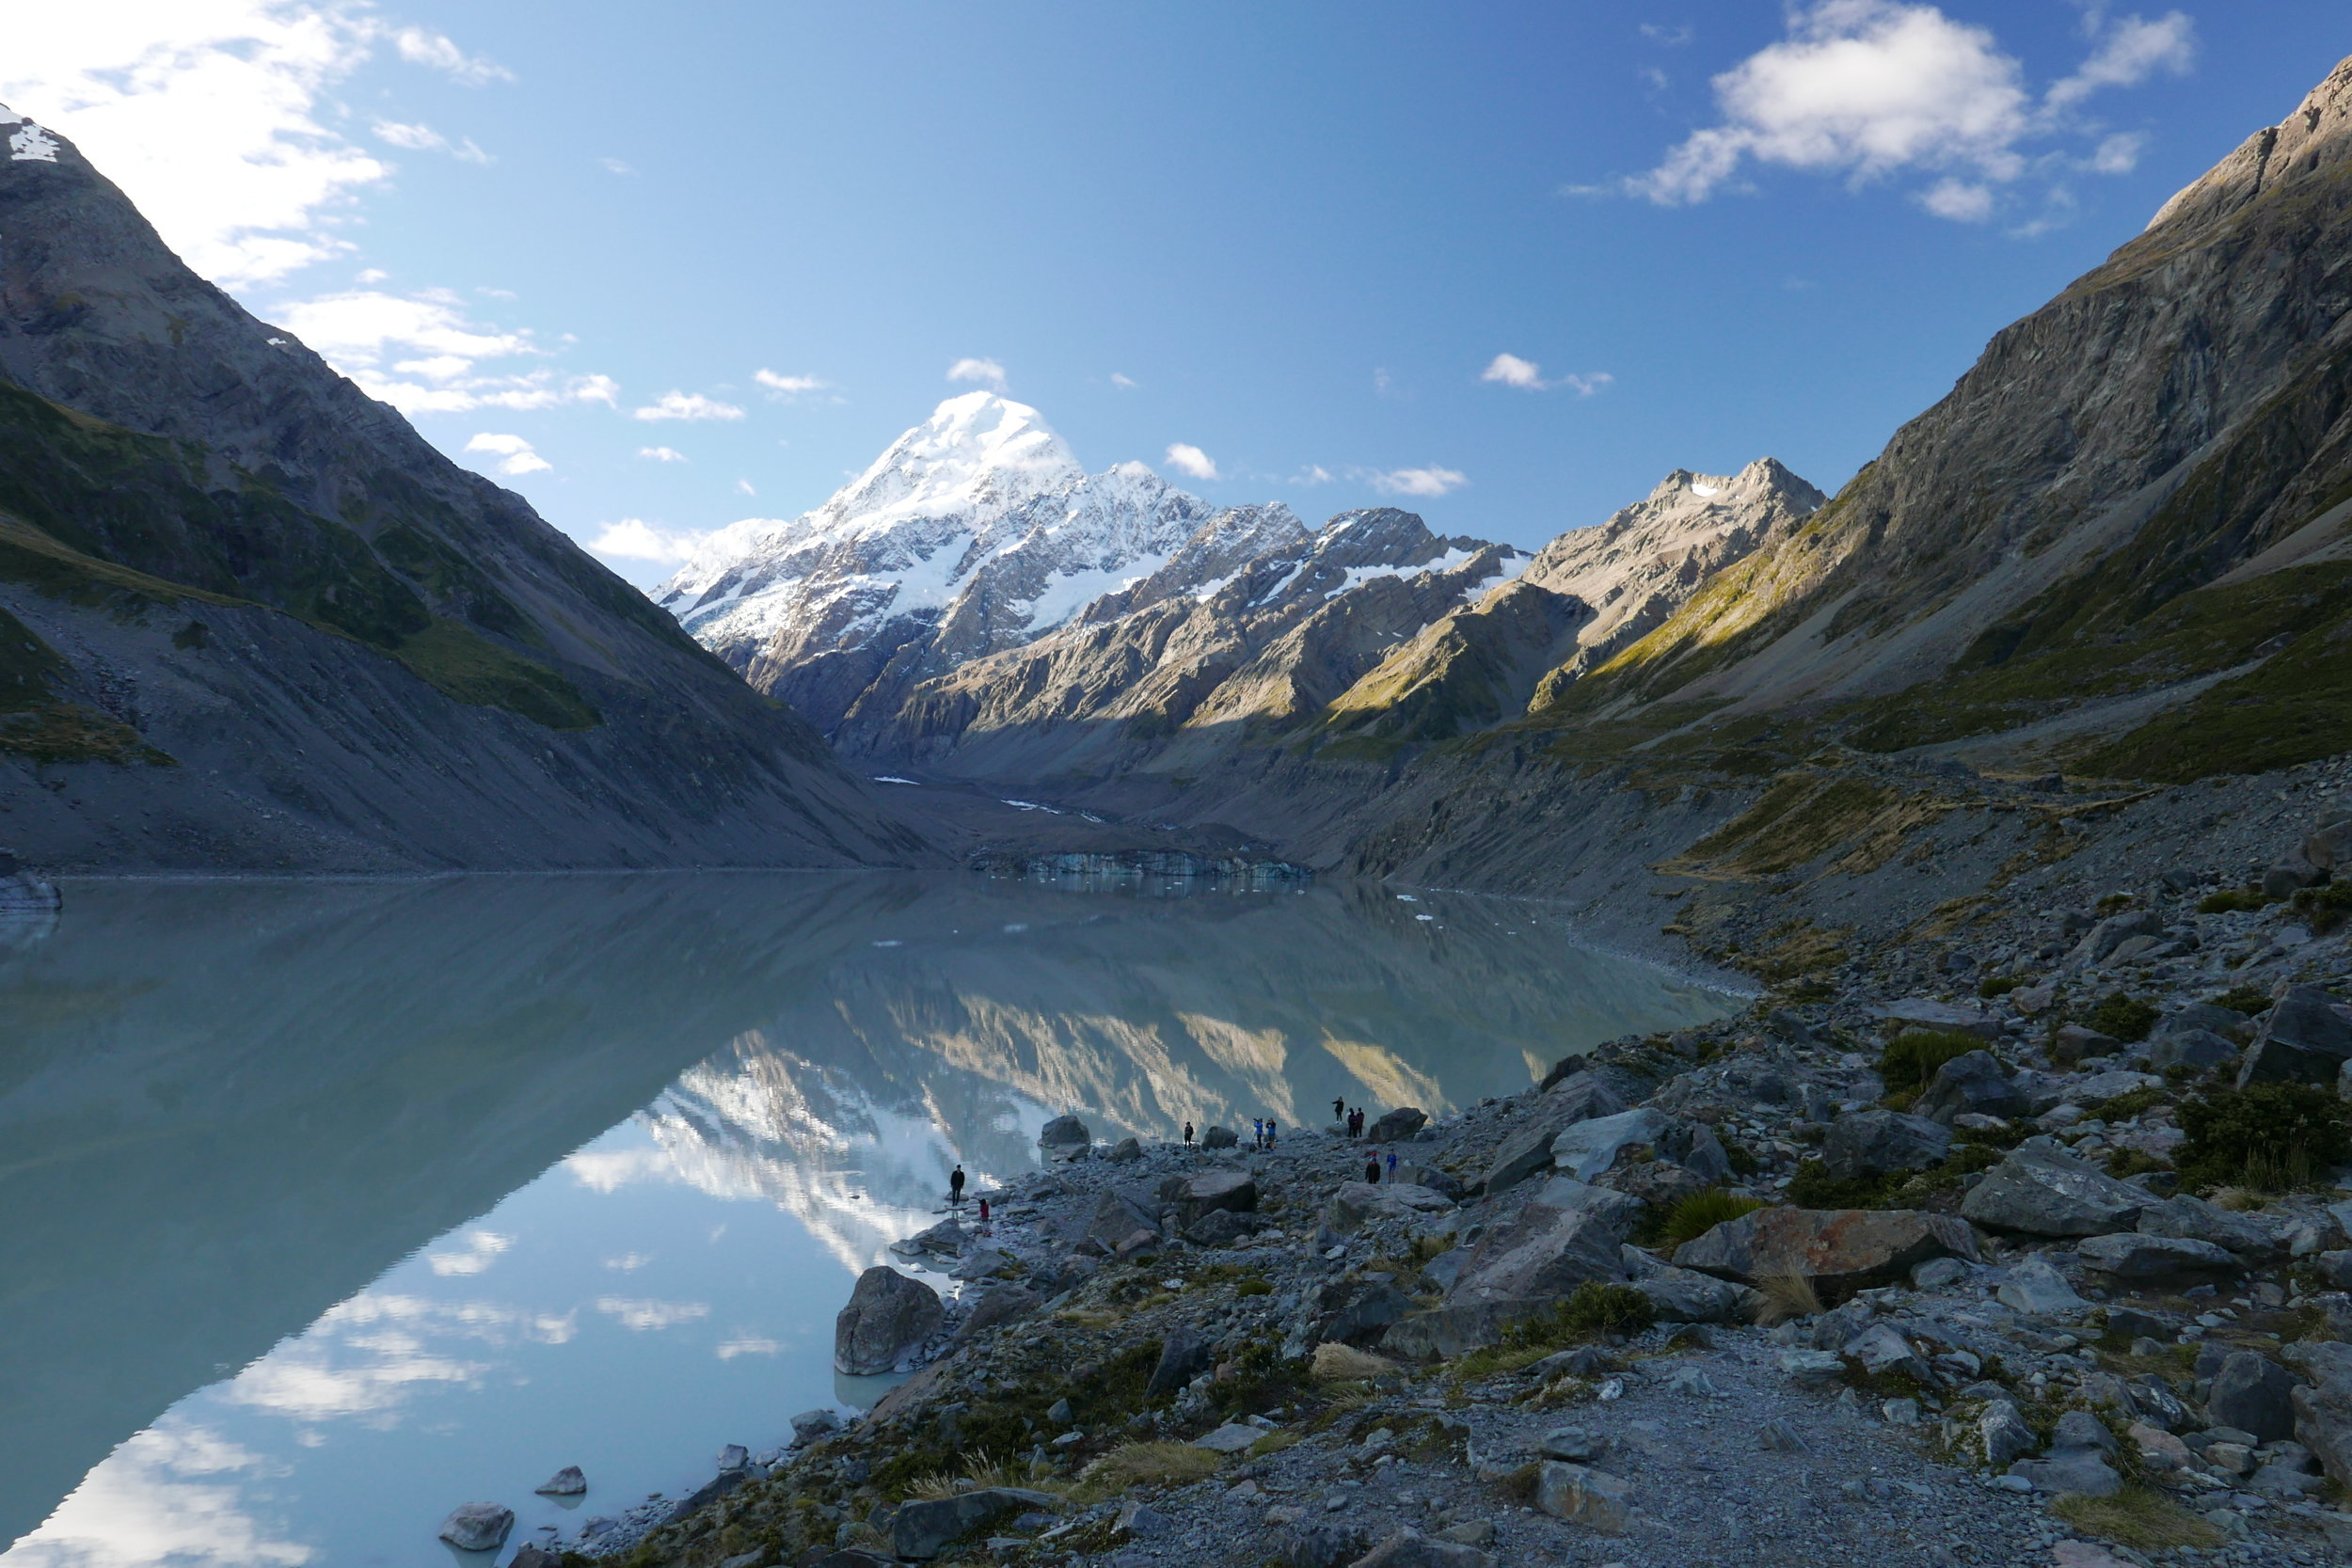 You can see our original plan destination (Mount Cook) in the background.